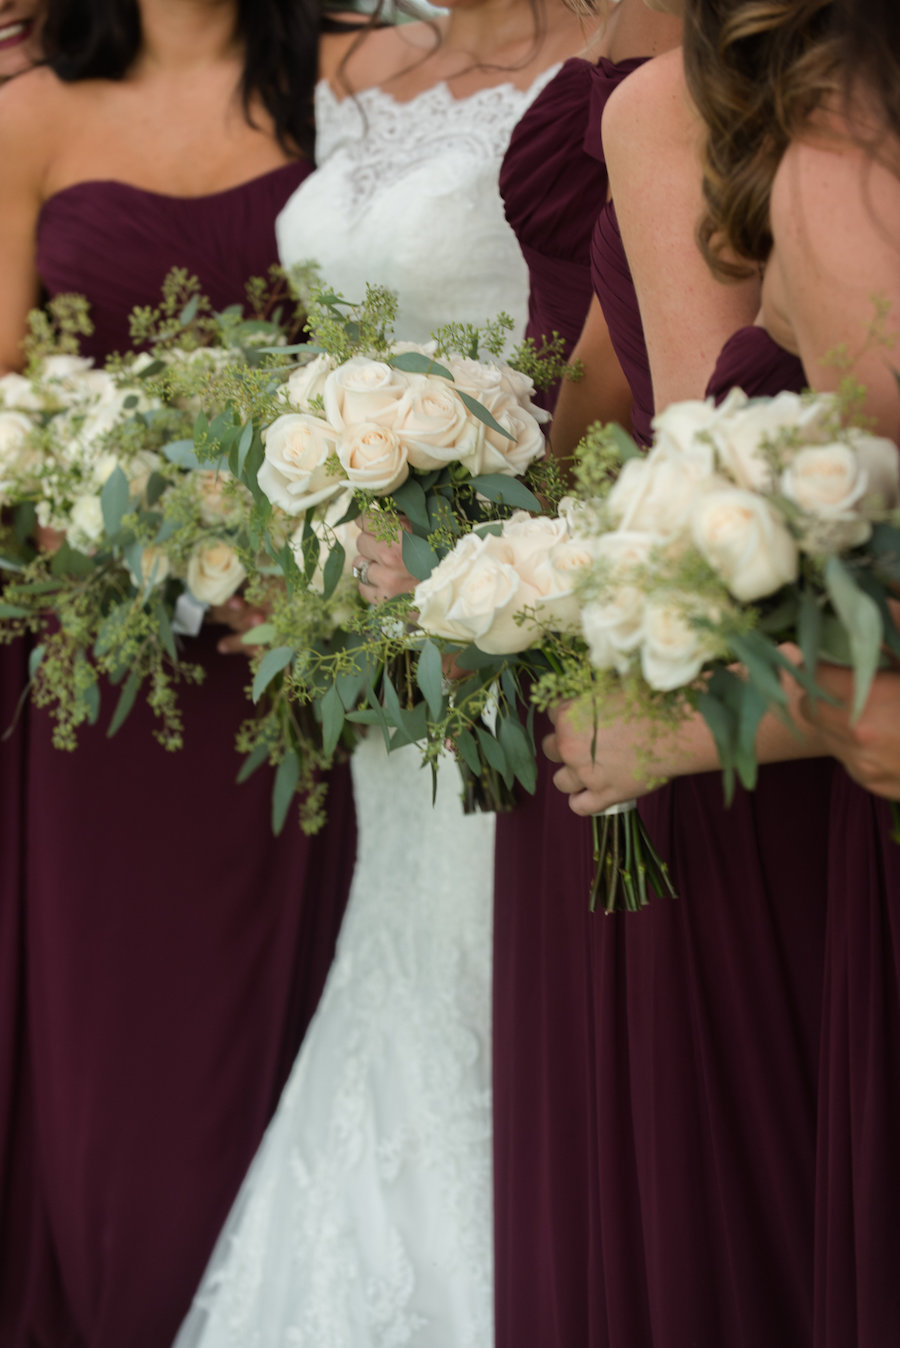 Bridal Party Garden Wedding Portrait with Bordeaux Bridesmaids Dresses and White Rose with Greenery Bouquets   South Tampa Wedding Photographer Caroline & Evan Photography